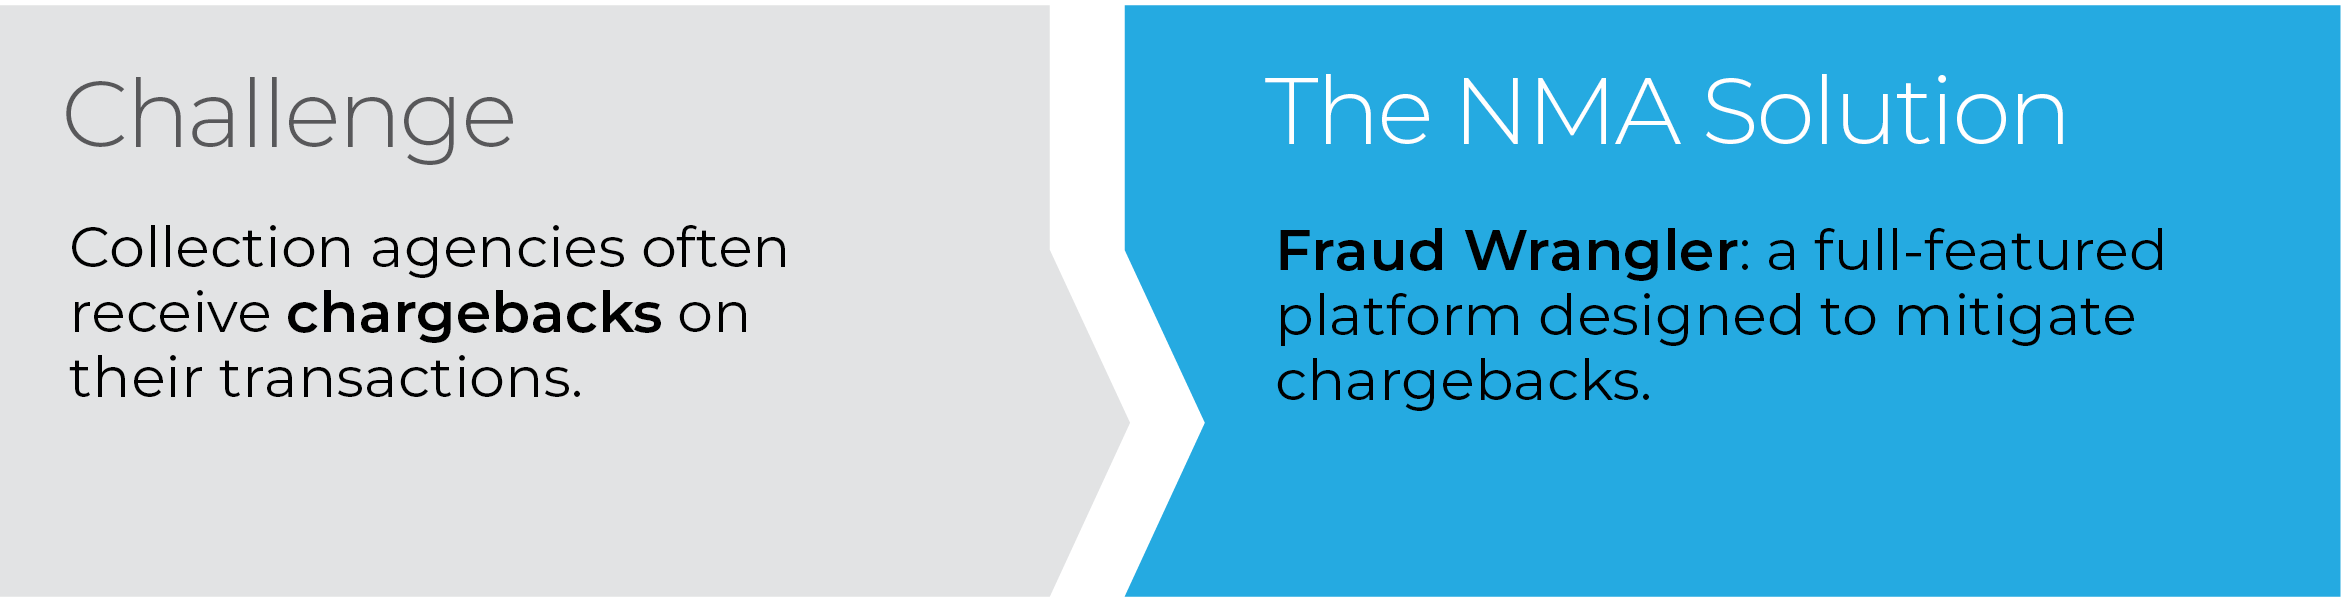 Fraud Wrangler: a full-featured platform designed to mitigate chargebacks.